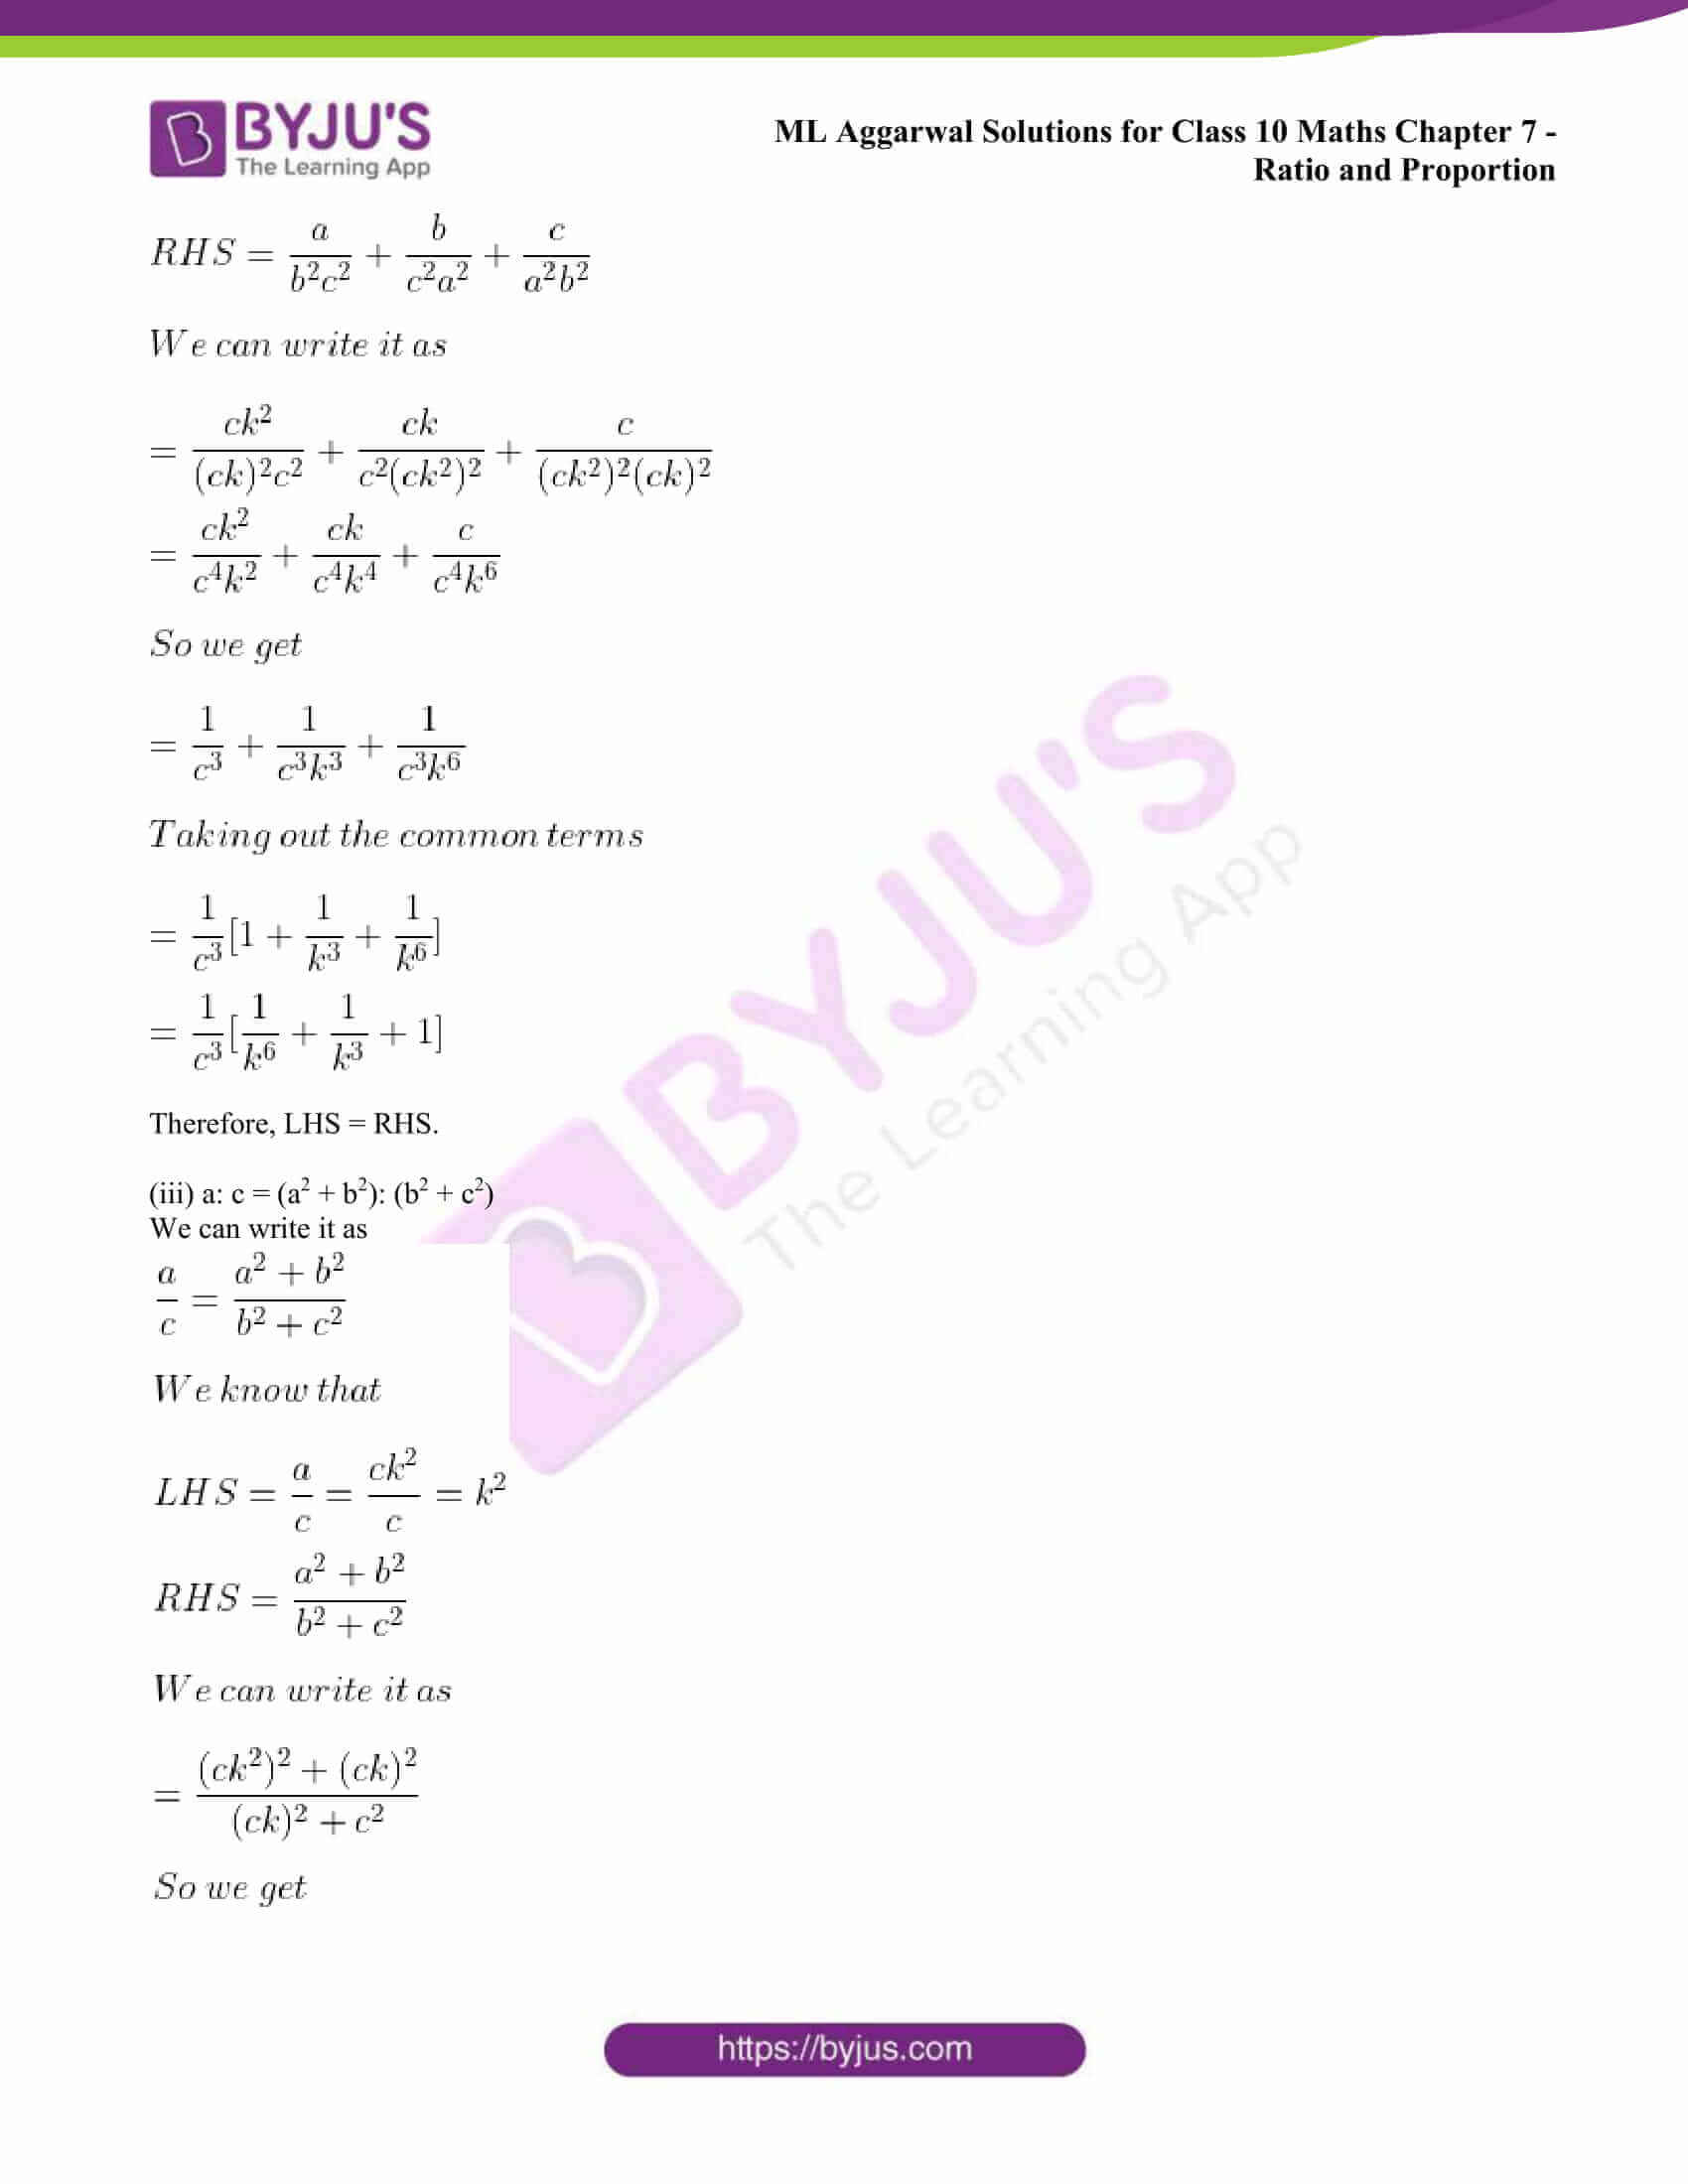 ml aggarwal solutions class 10 maths chapter 7 39